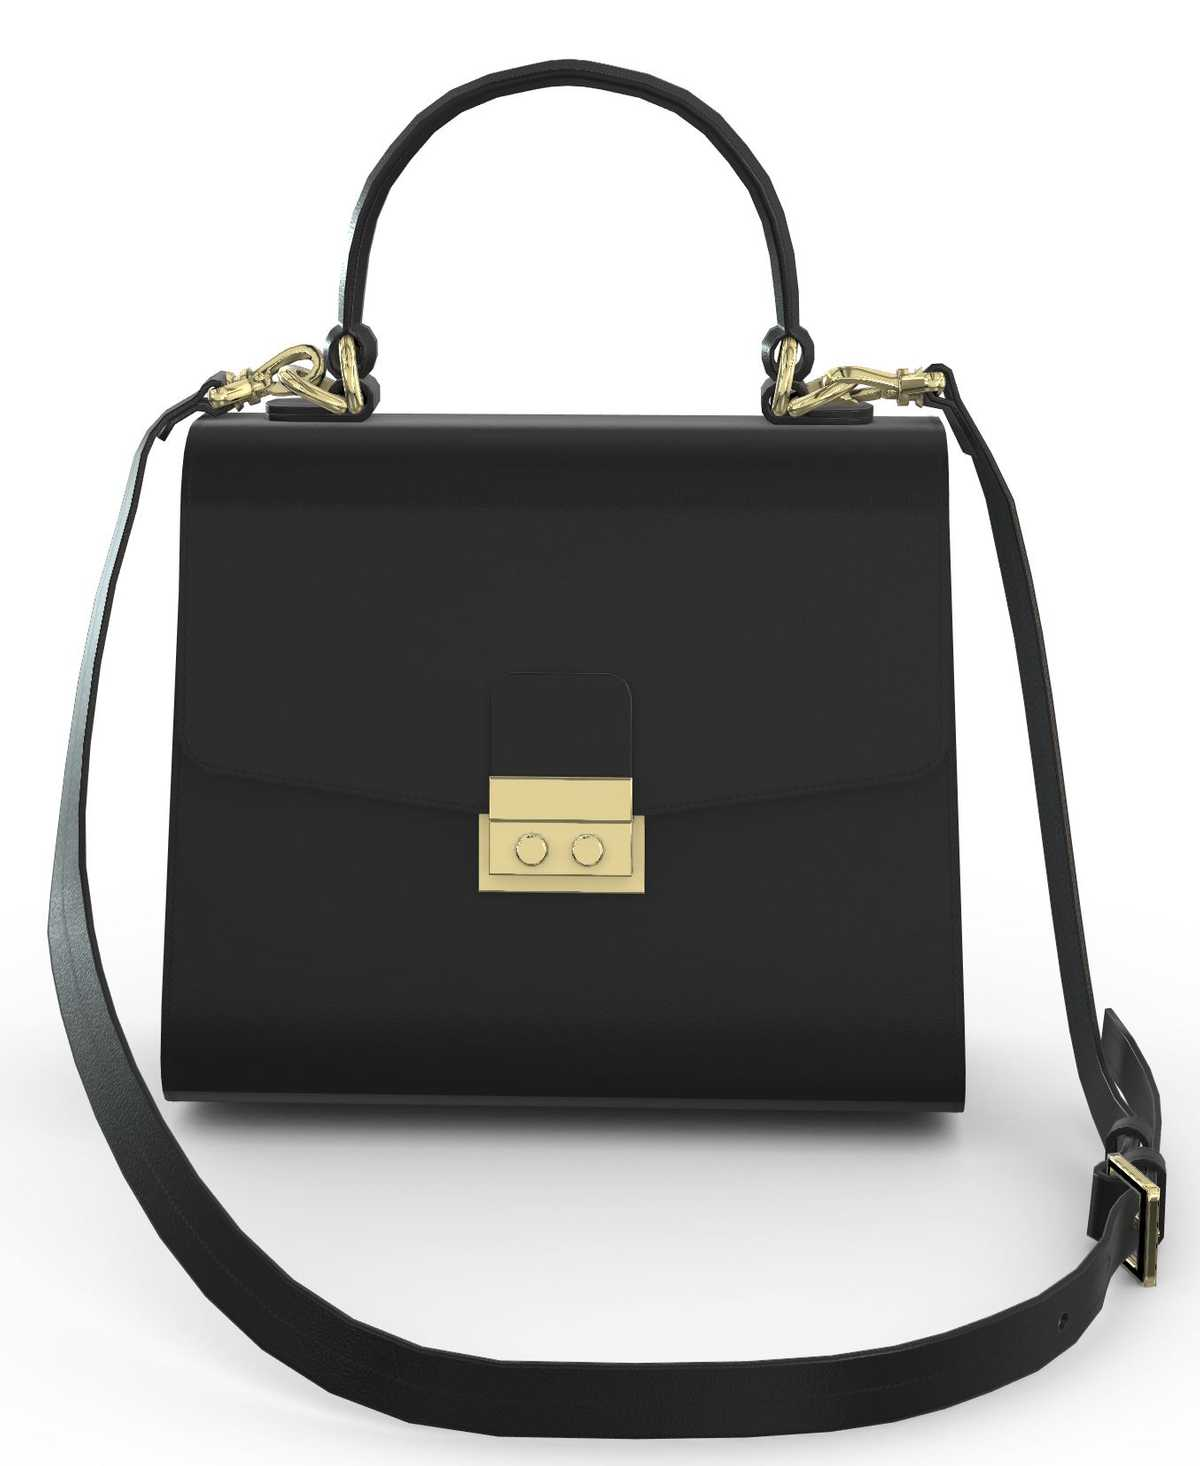 Almaaz Lock Small - black